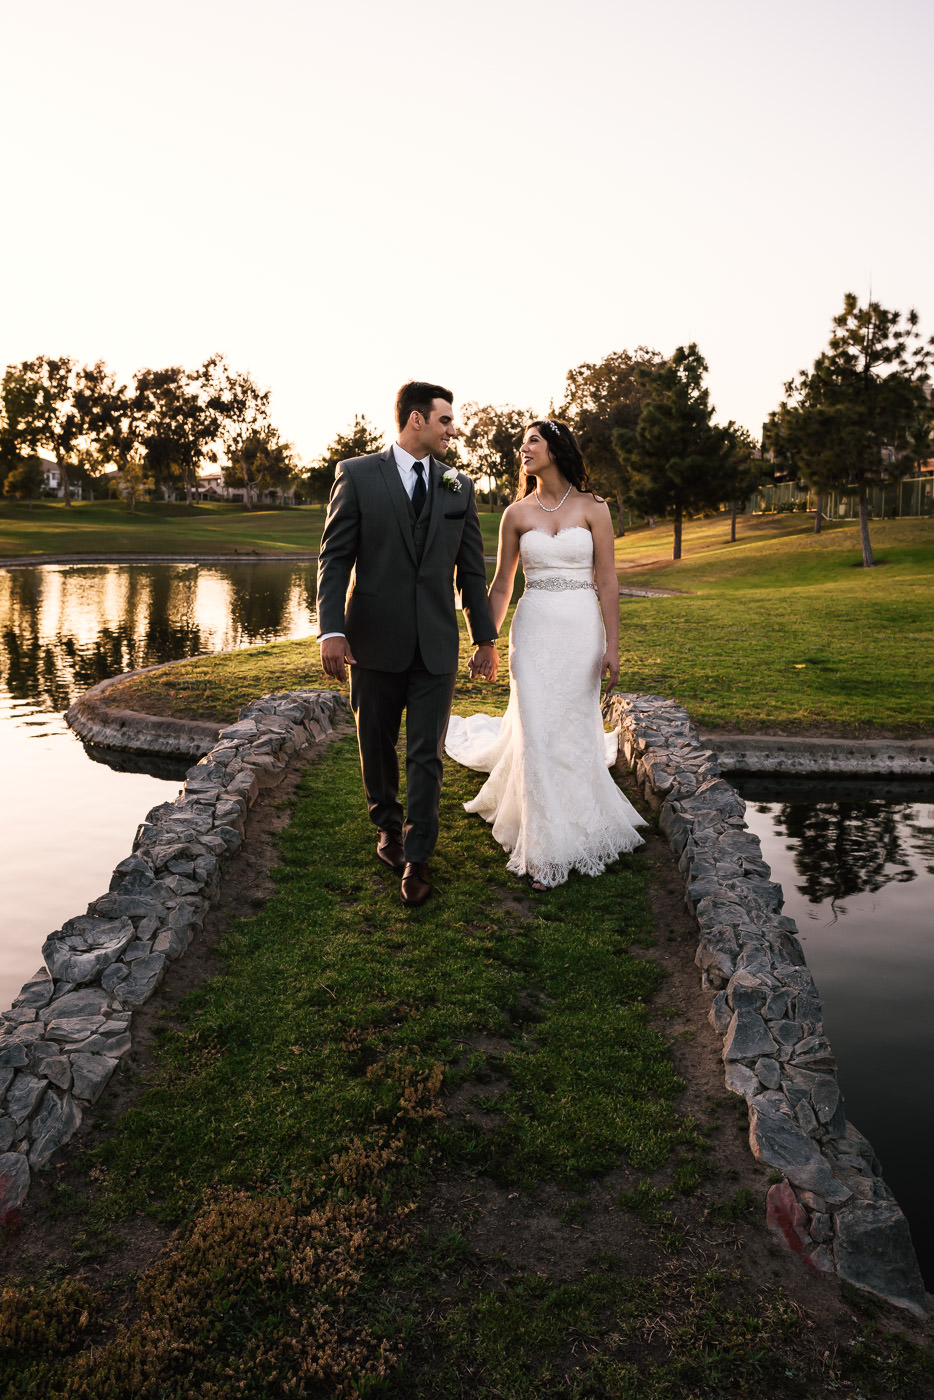 Newly married couple walks hand in hand across the stone bridge spanning the pond.